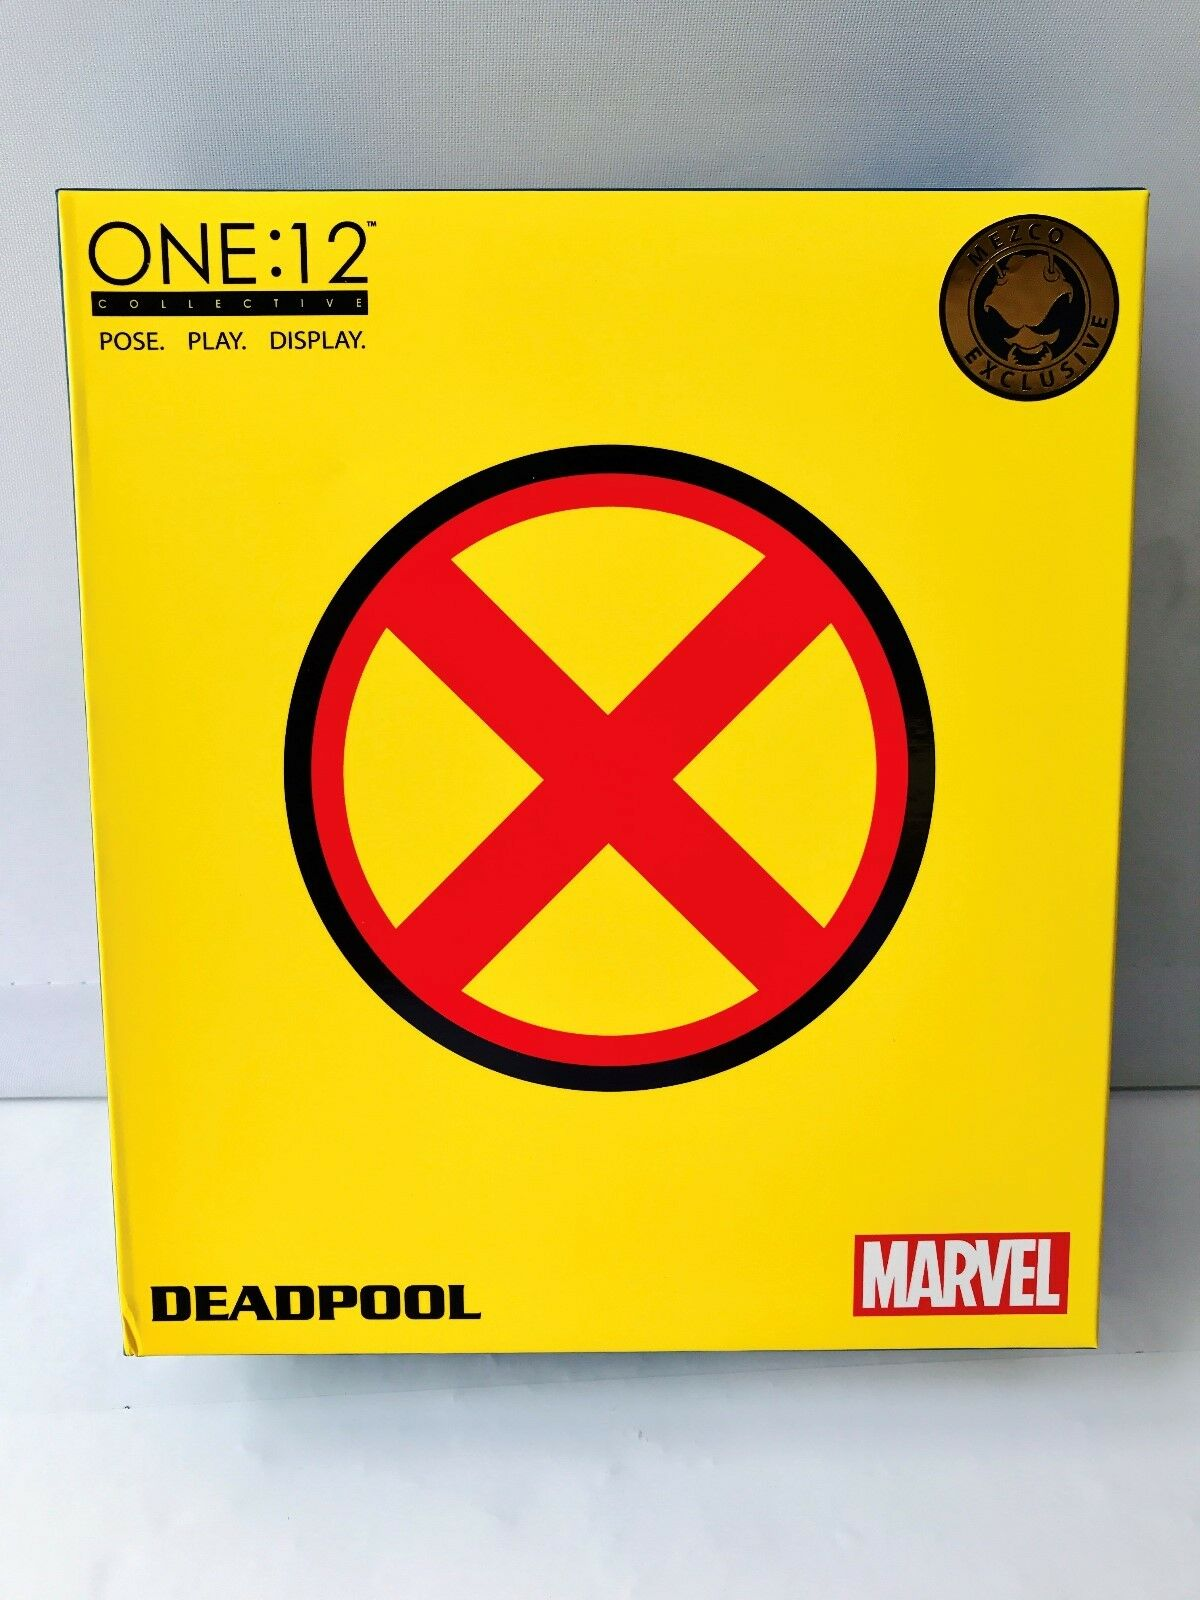 ONE 12 Collectif X-Men Deadpool Action Figure MEZCO SDCC 2017 Exclusive MARVEL